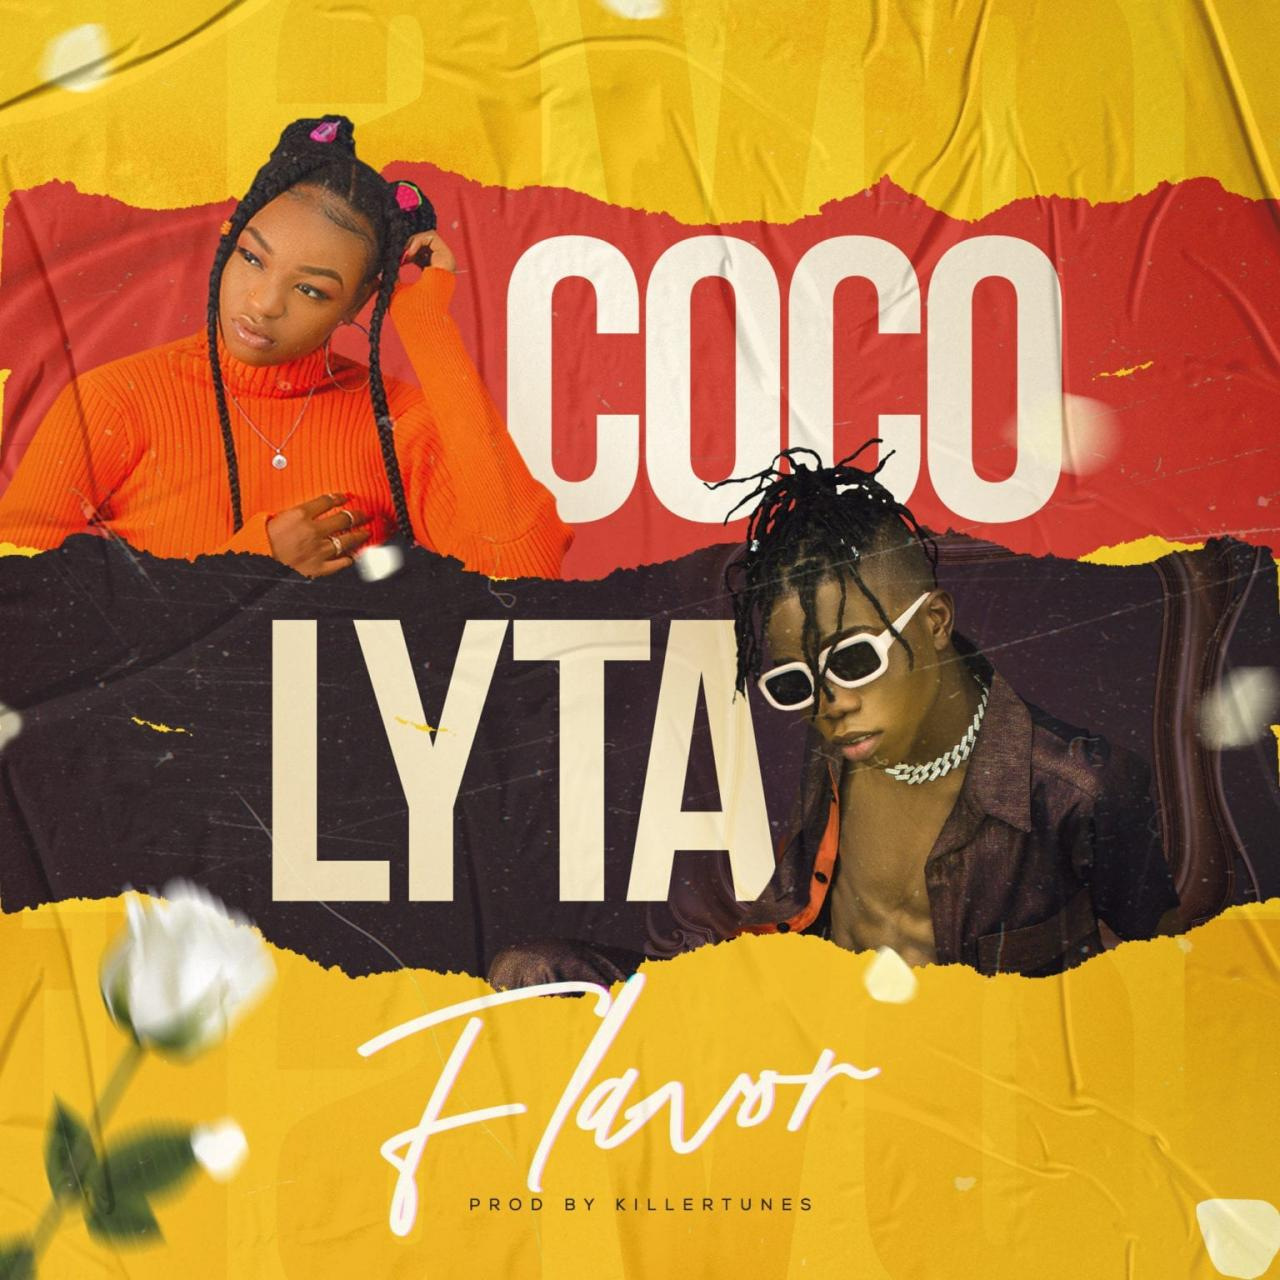 Coco Ft. Lyta - Flavor [Music & Video]